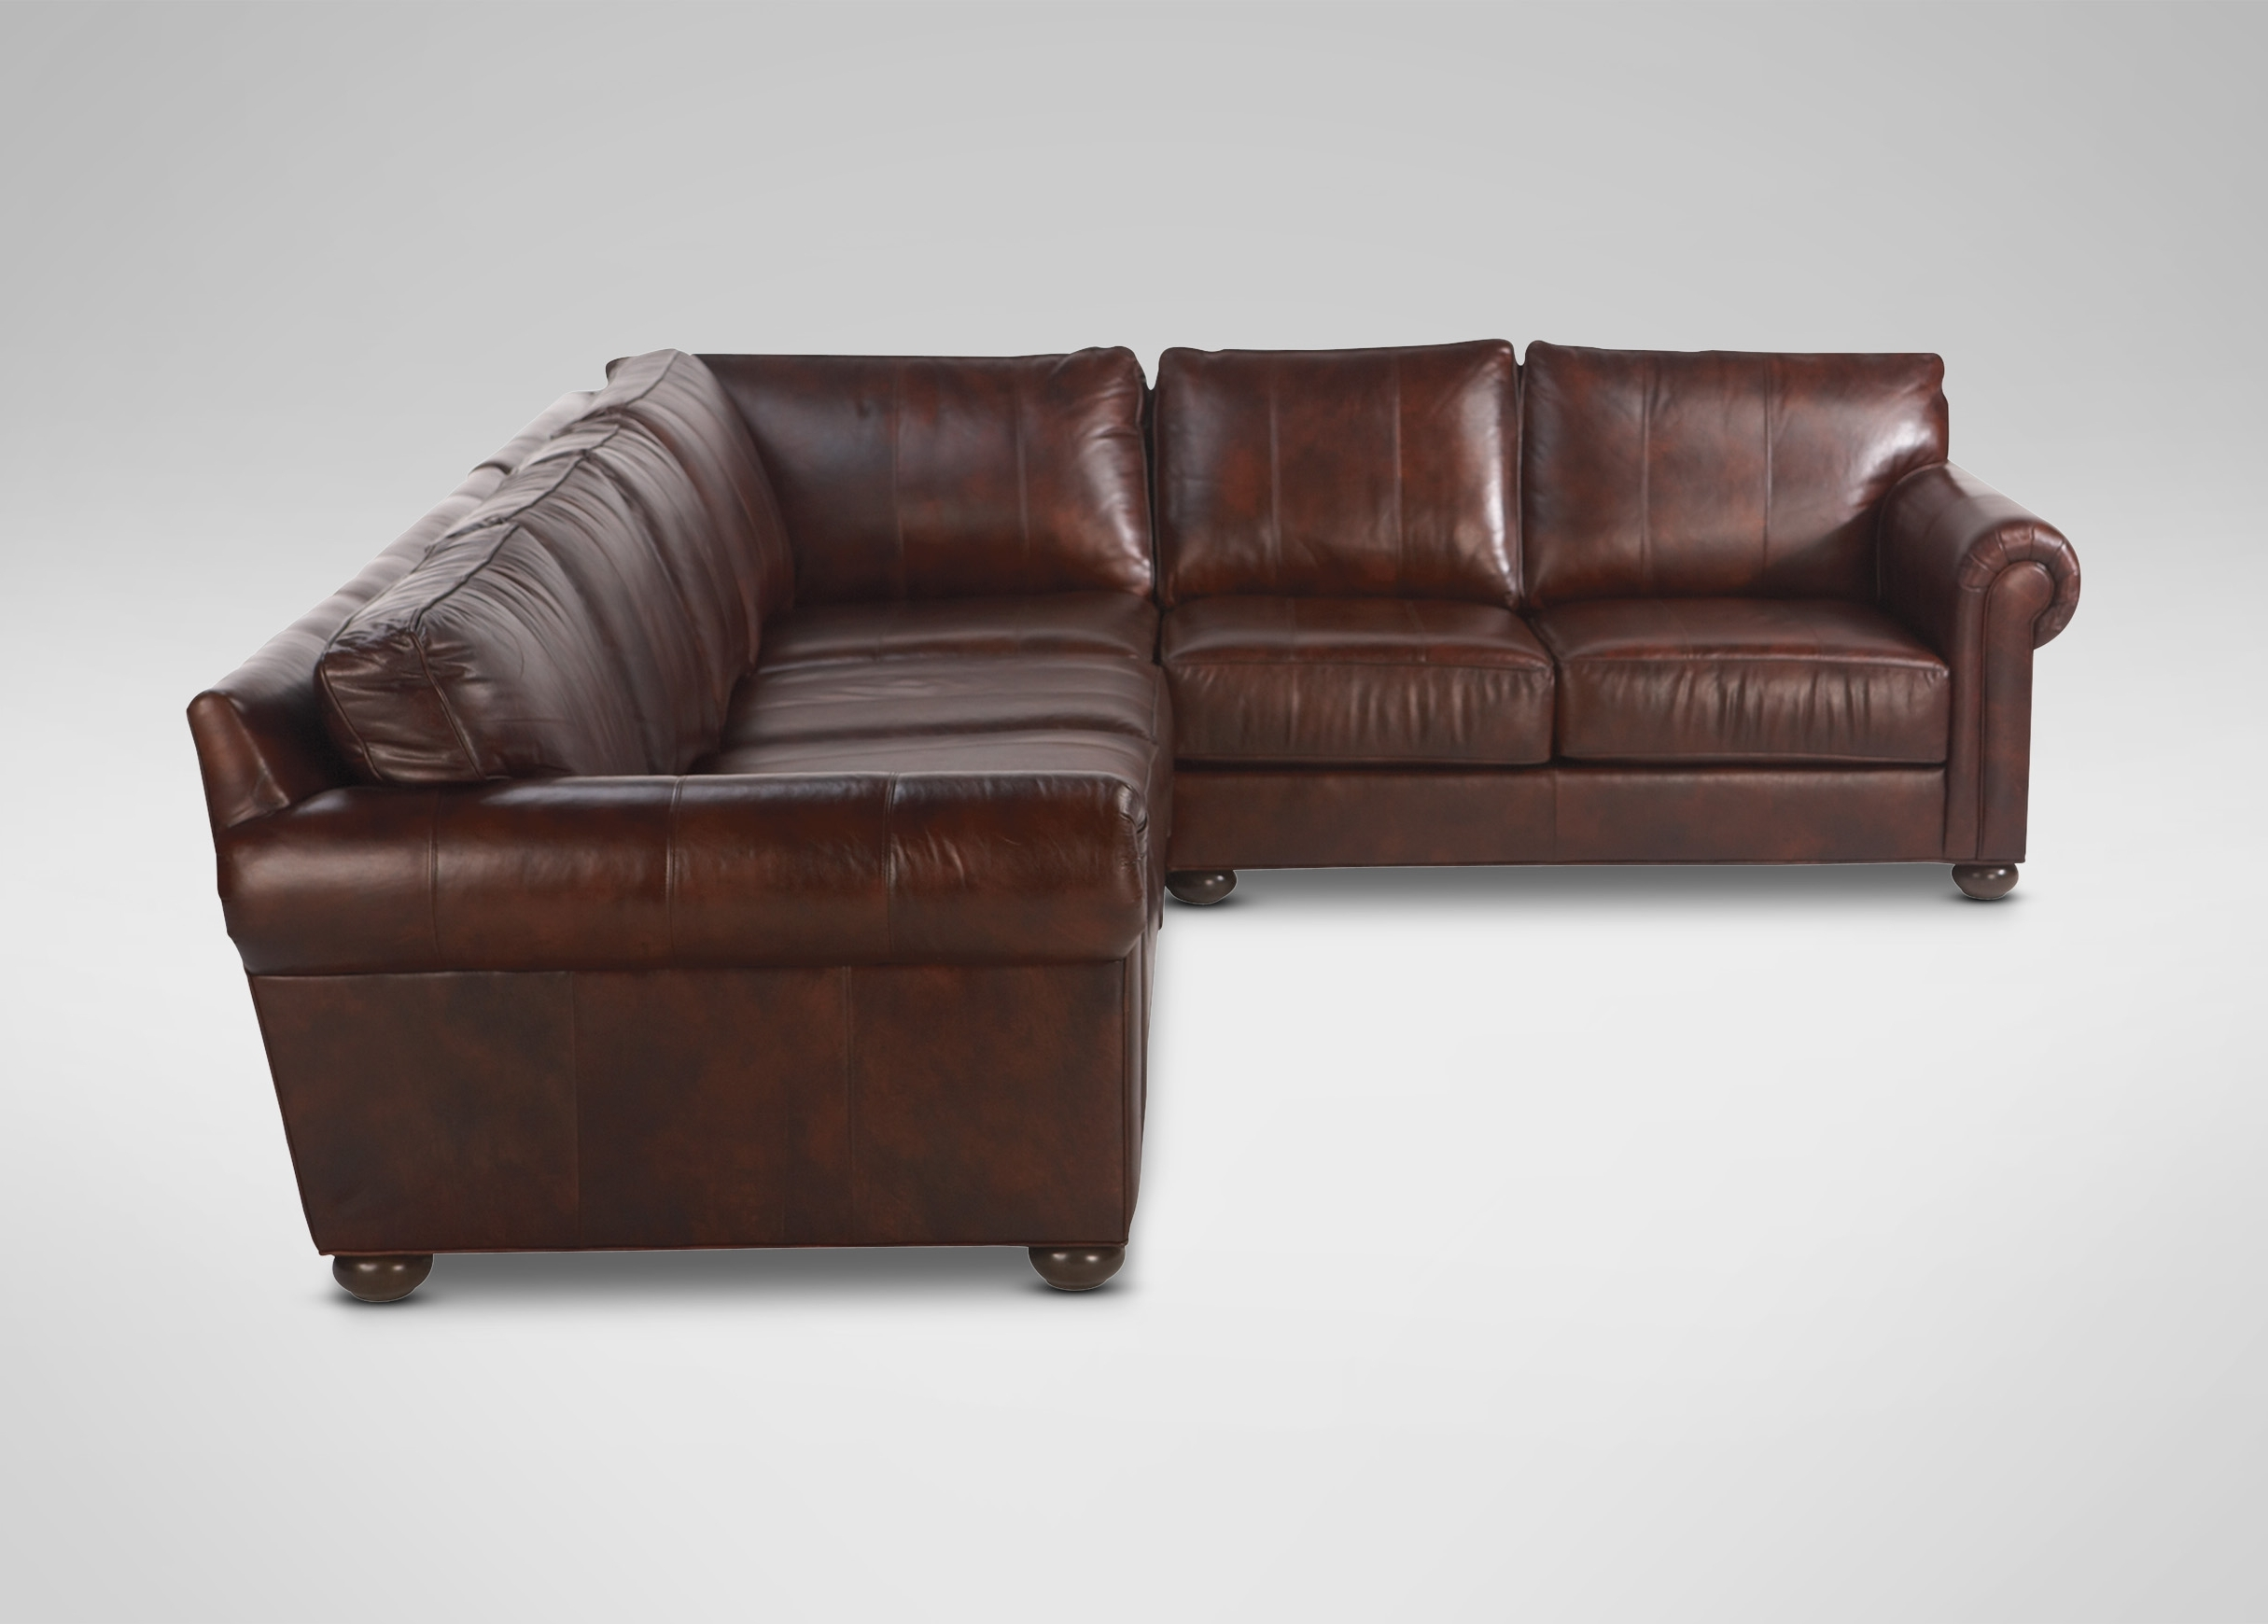 Sectional Sofas At Ethan Allen In Favorite Richmond Leather Sectional (View 10 of 15)